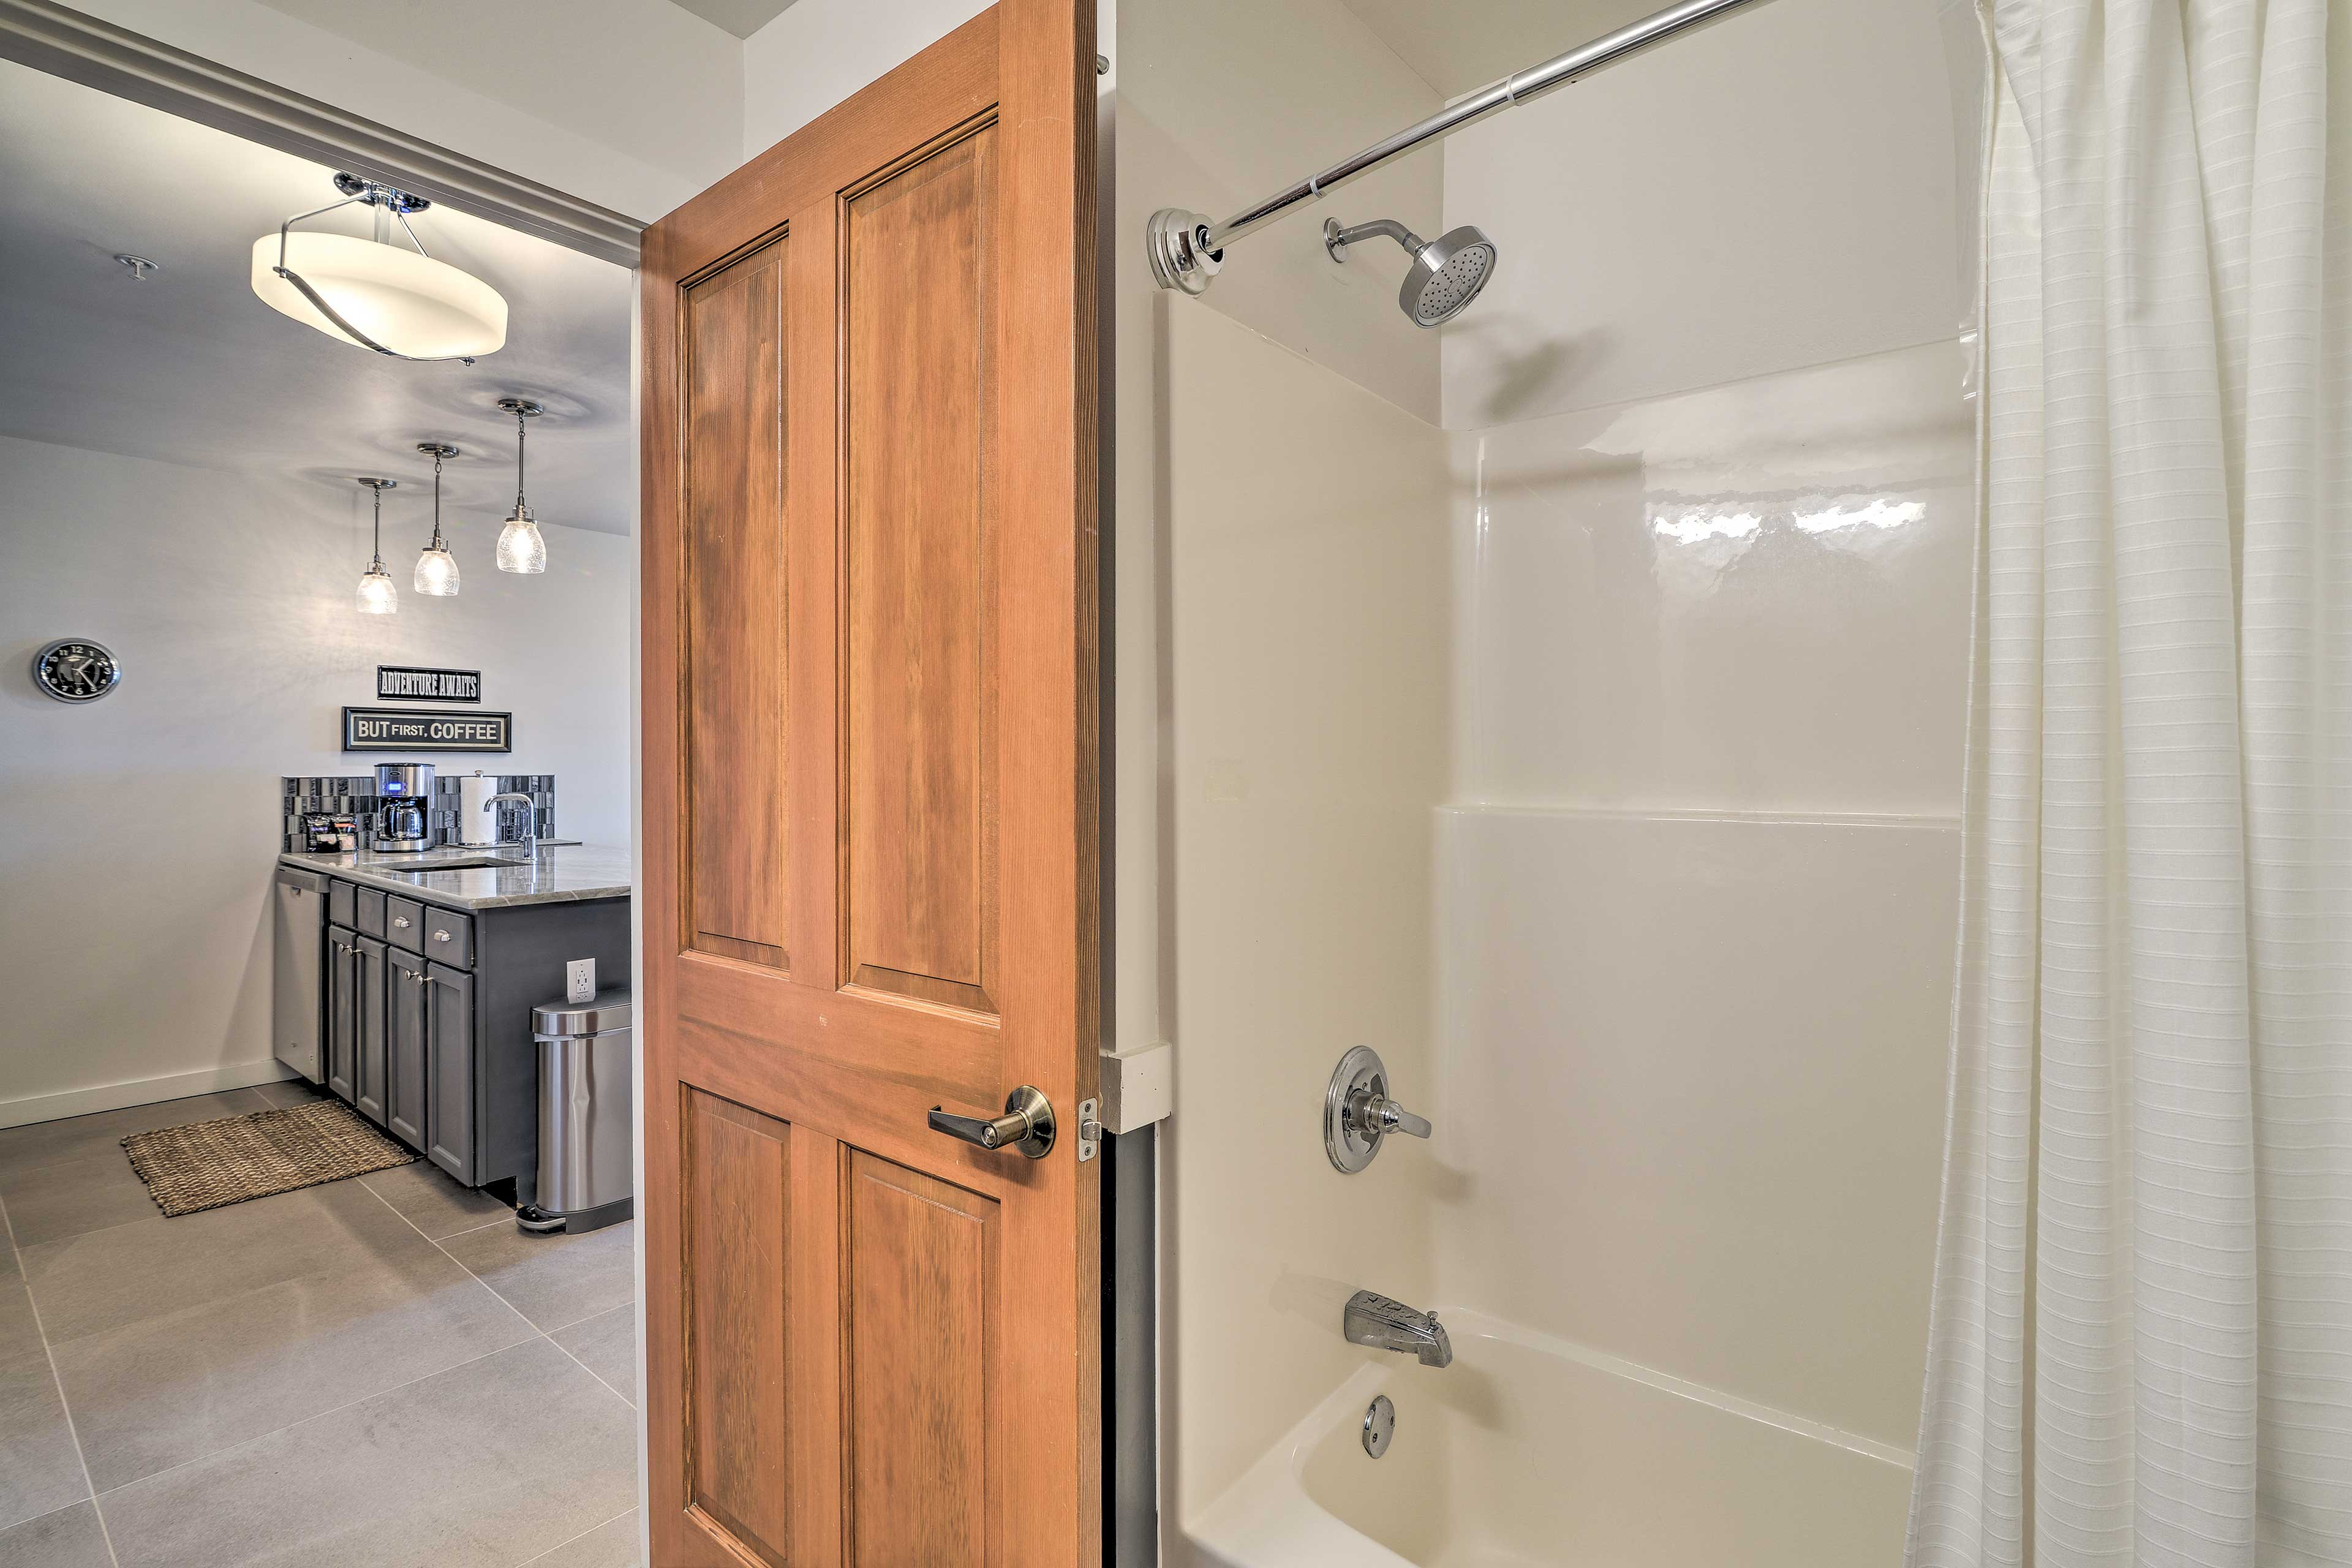 The bathroom features a shower/tub combo along with fresh towels.